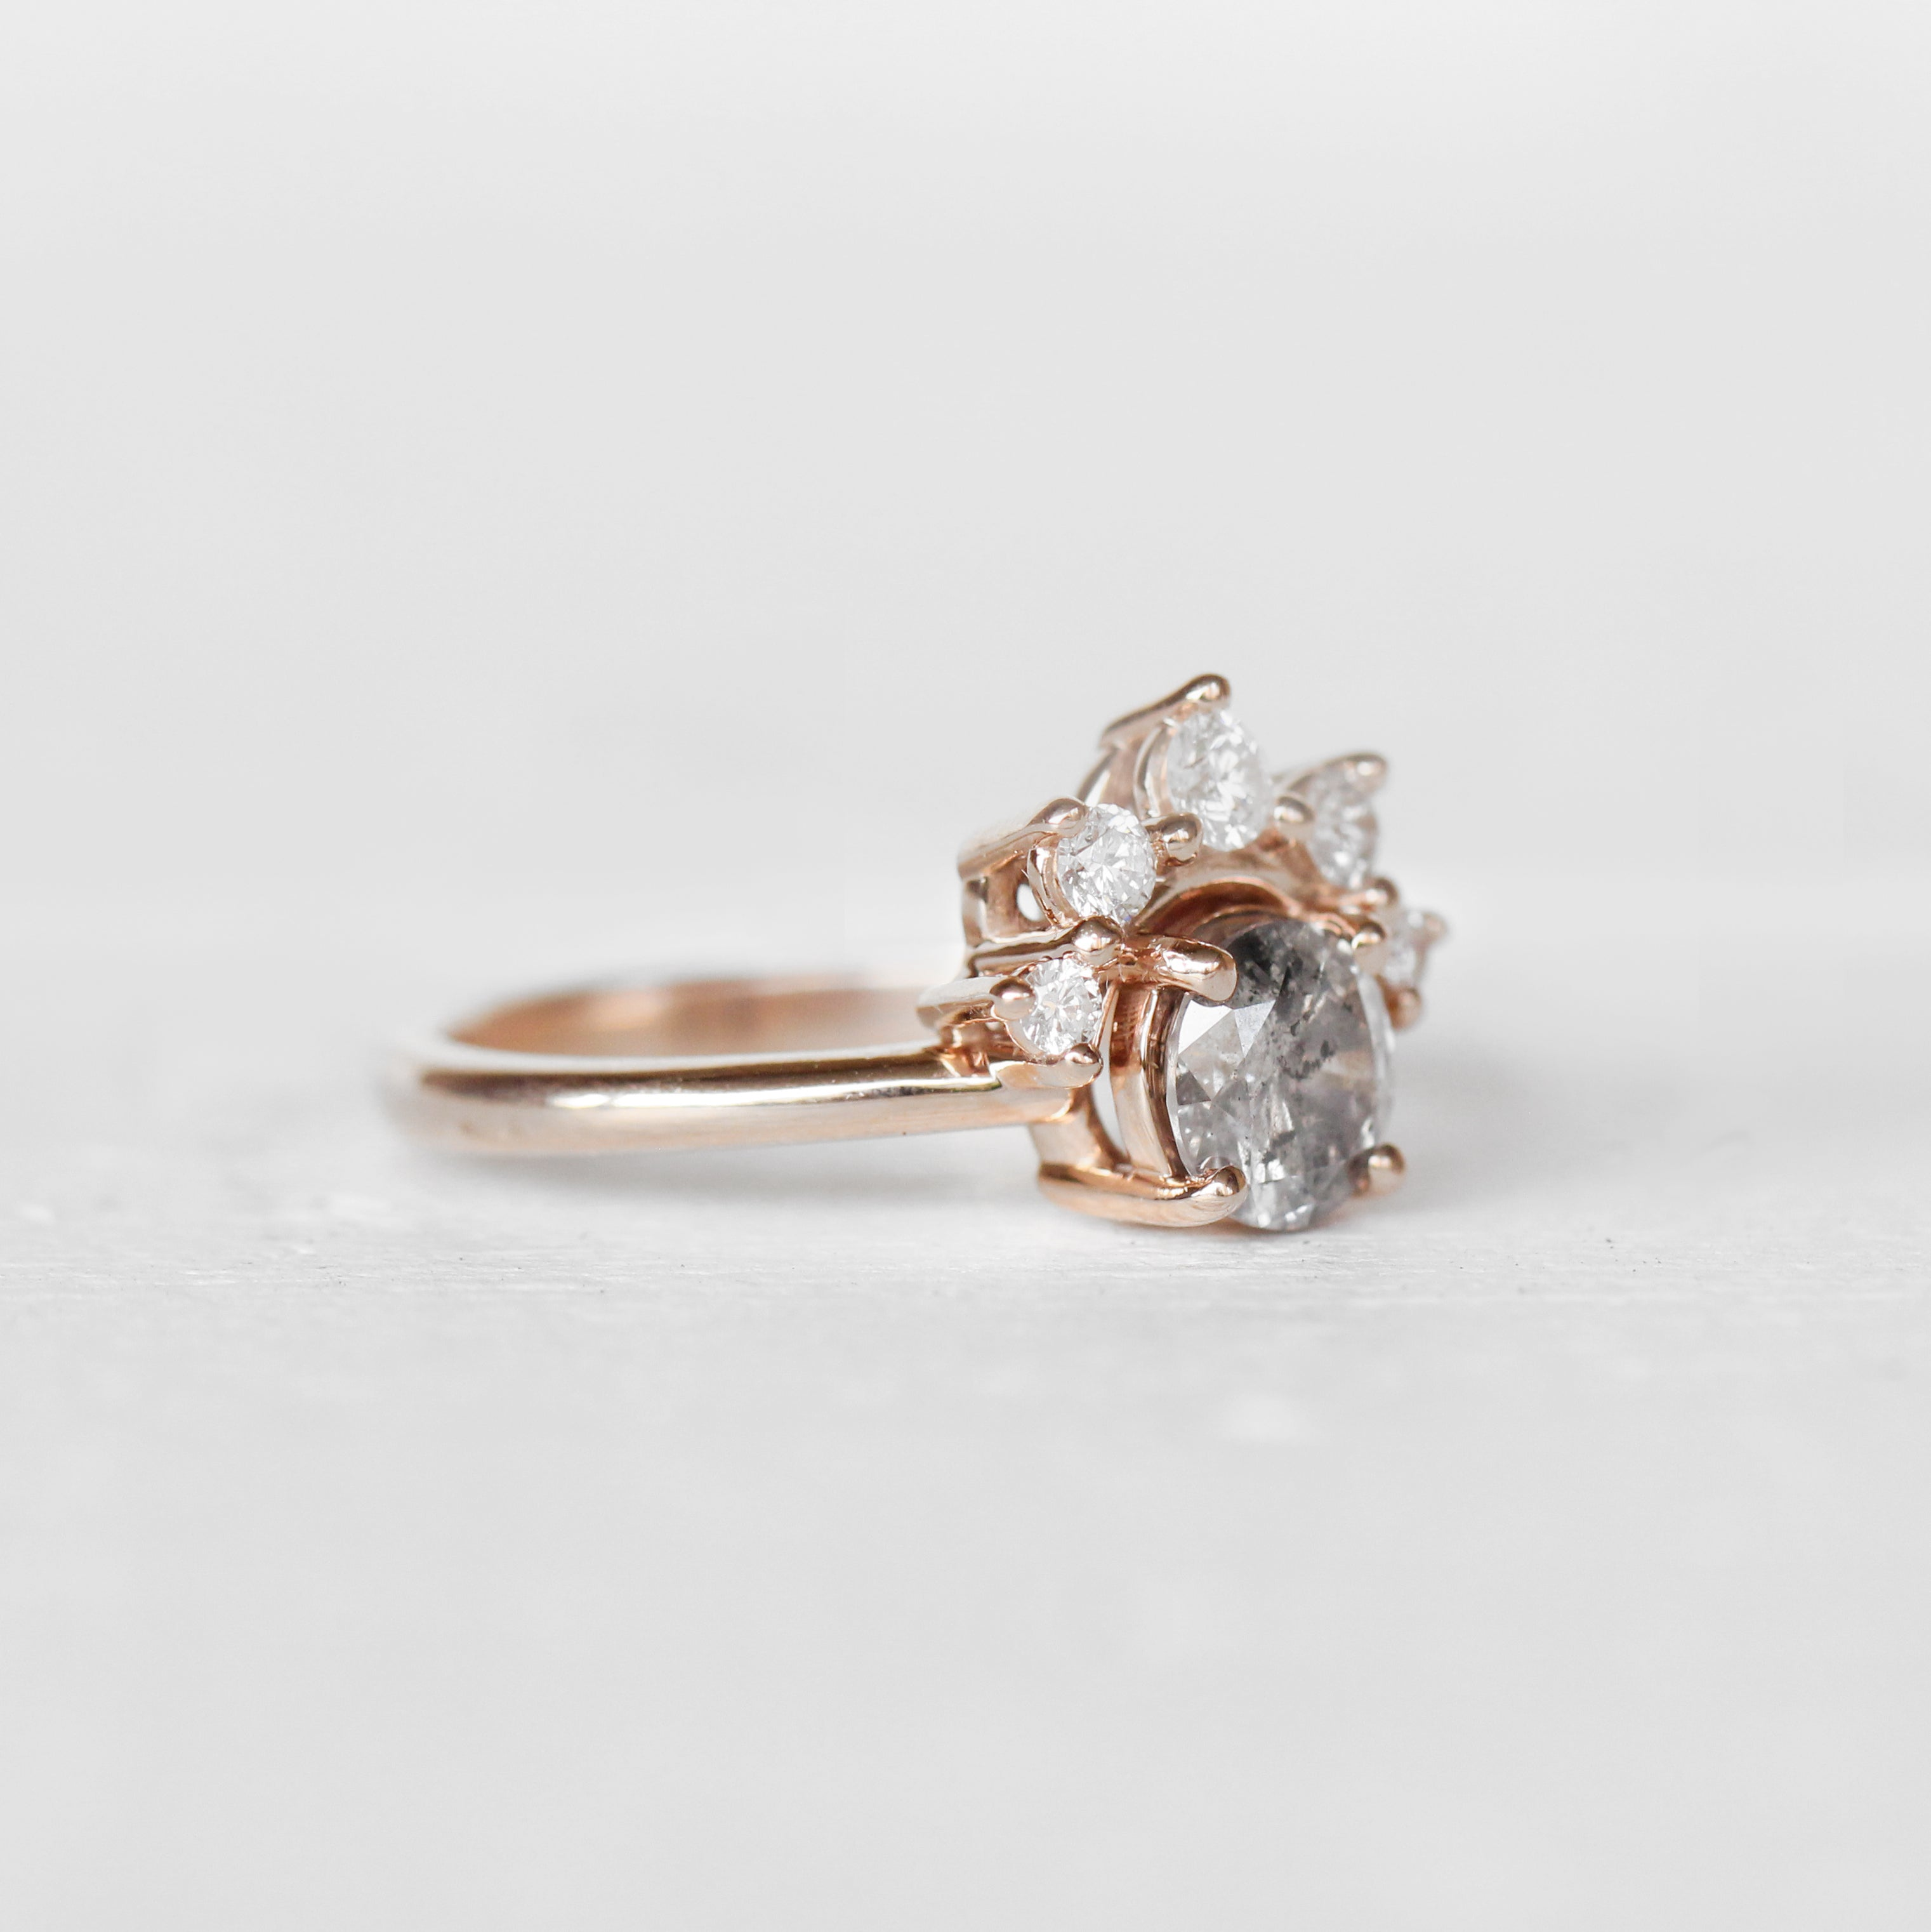 Bethany Ring + Band SET with a center 1.06 carat Celestial Diamond in 10k Rose Gold - Ready to Size and Ship - Celestial Diamonds ® by Midwinter Co.